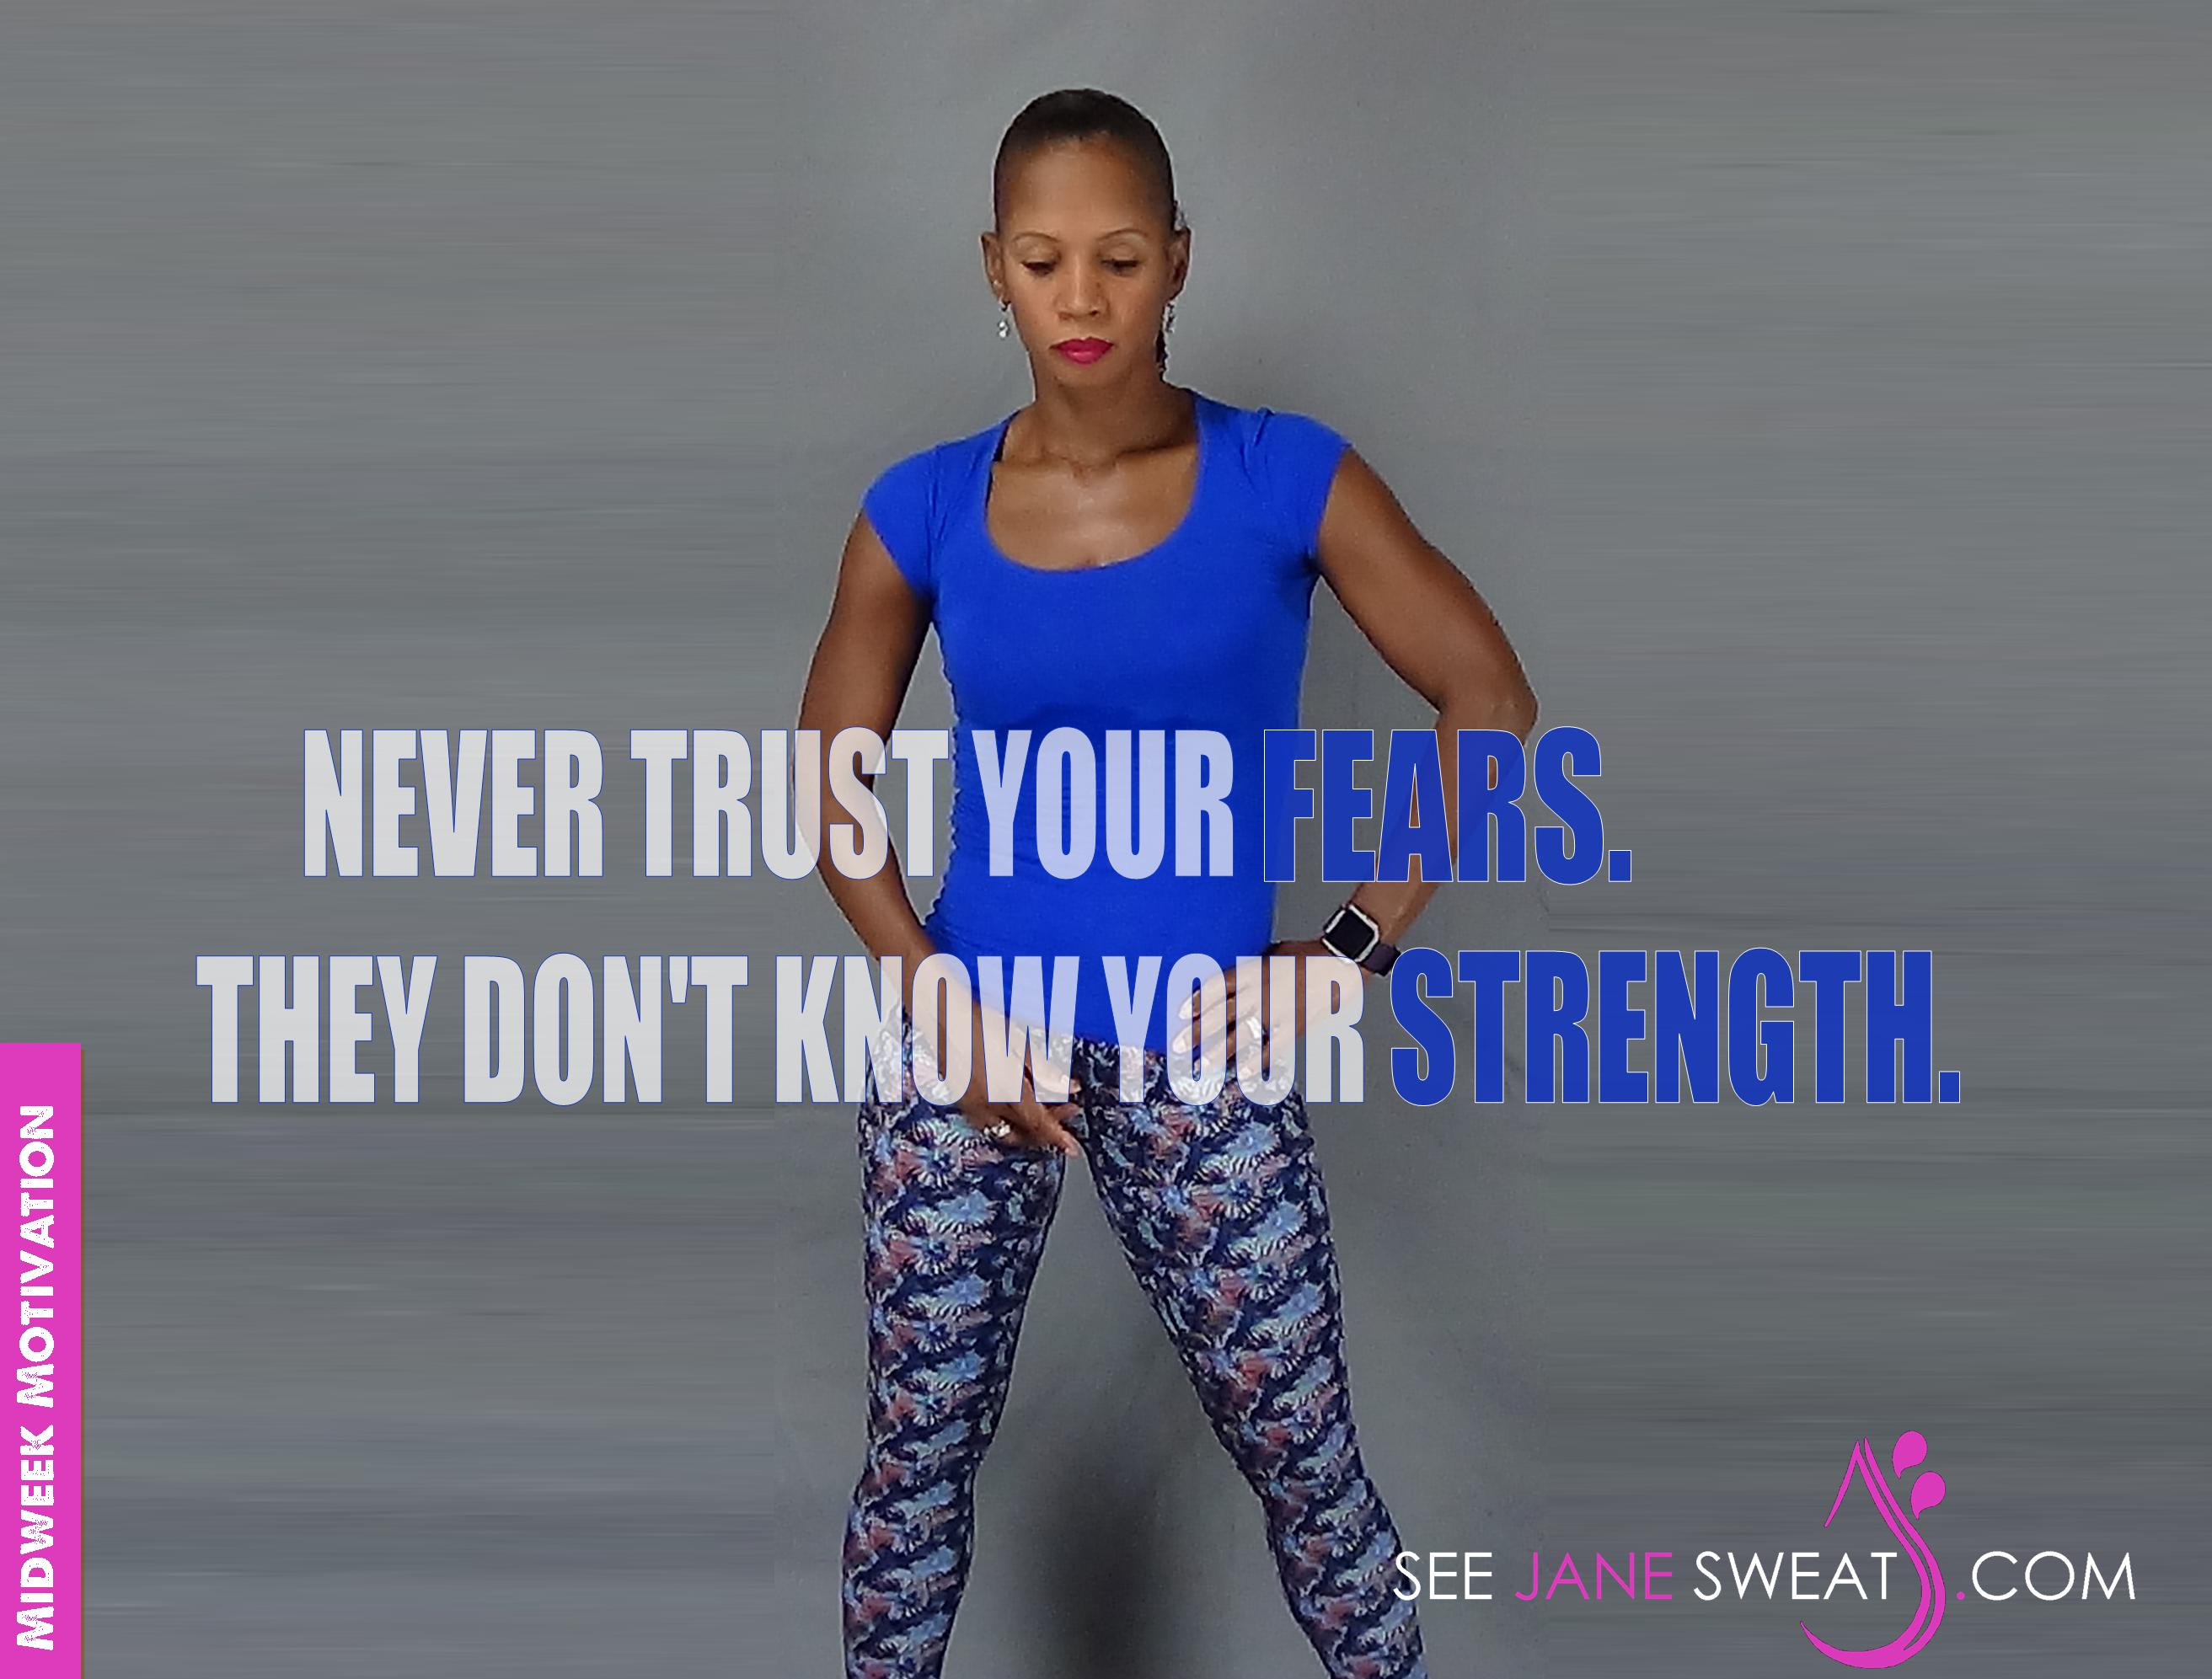 Midweek Motivation - Never Trust Your Fears...